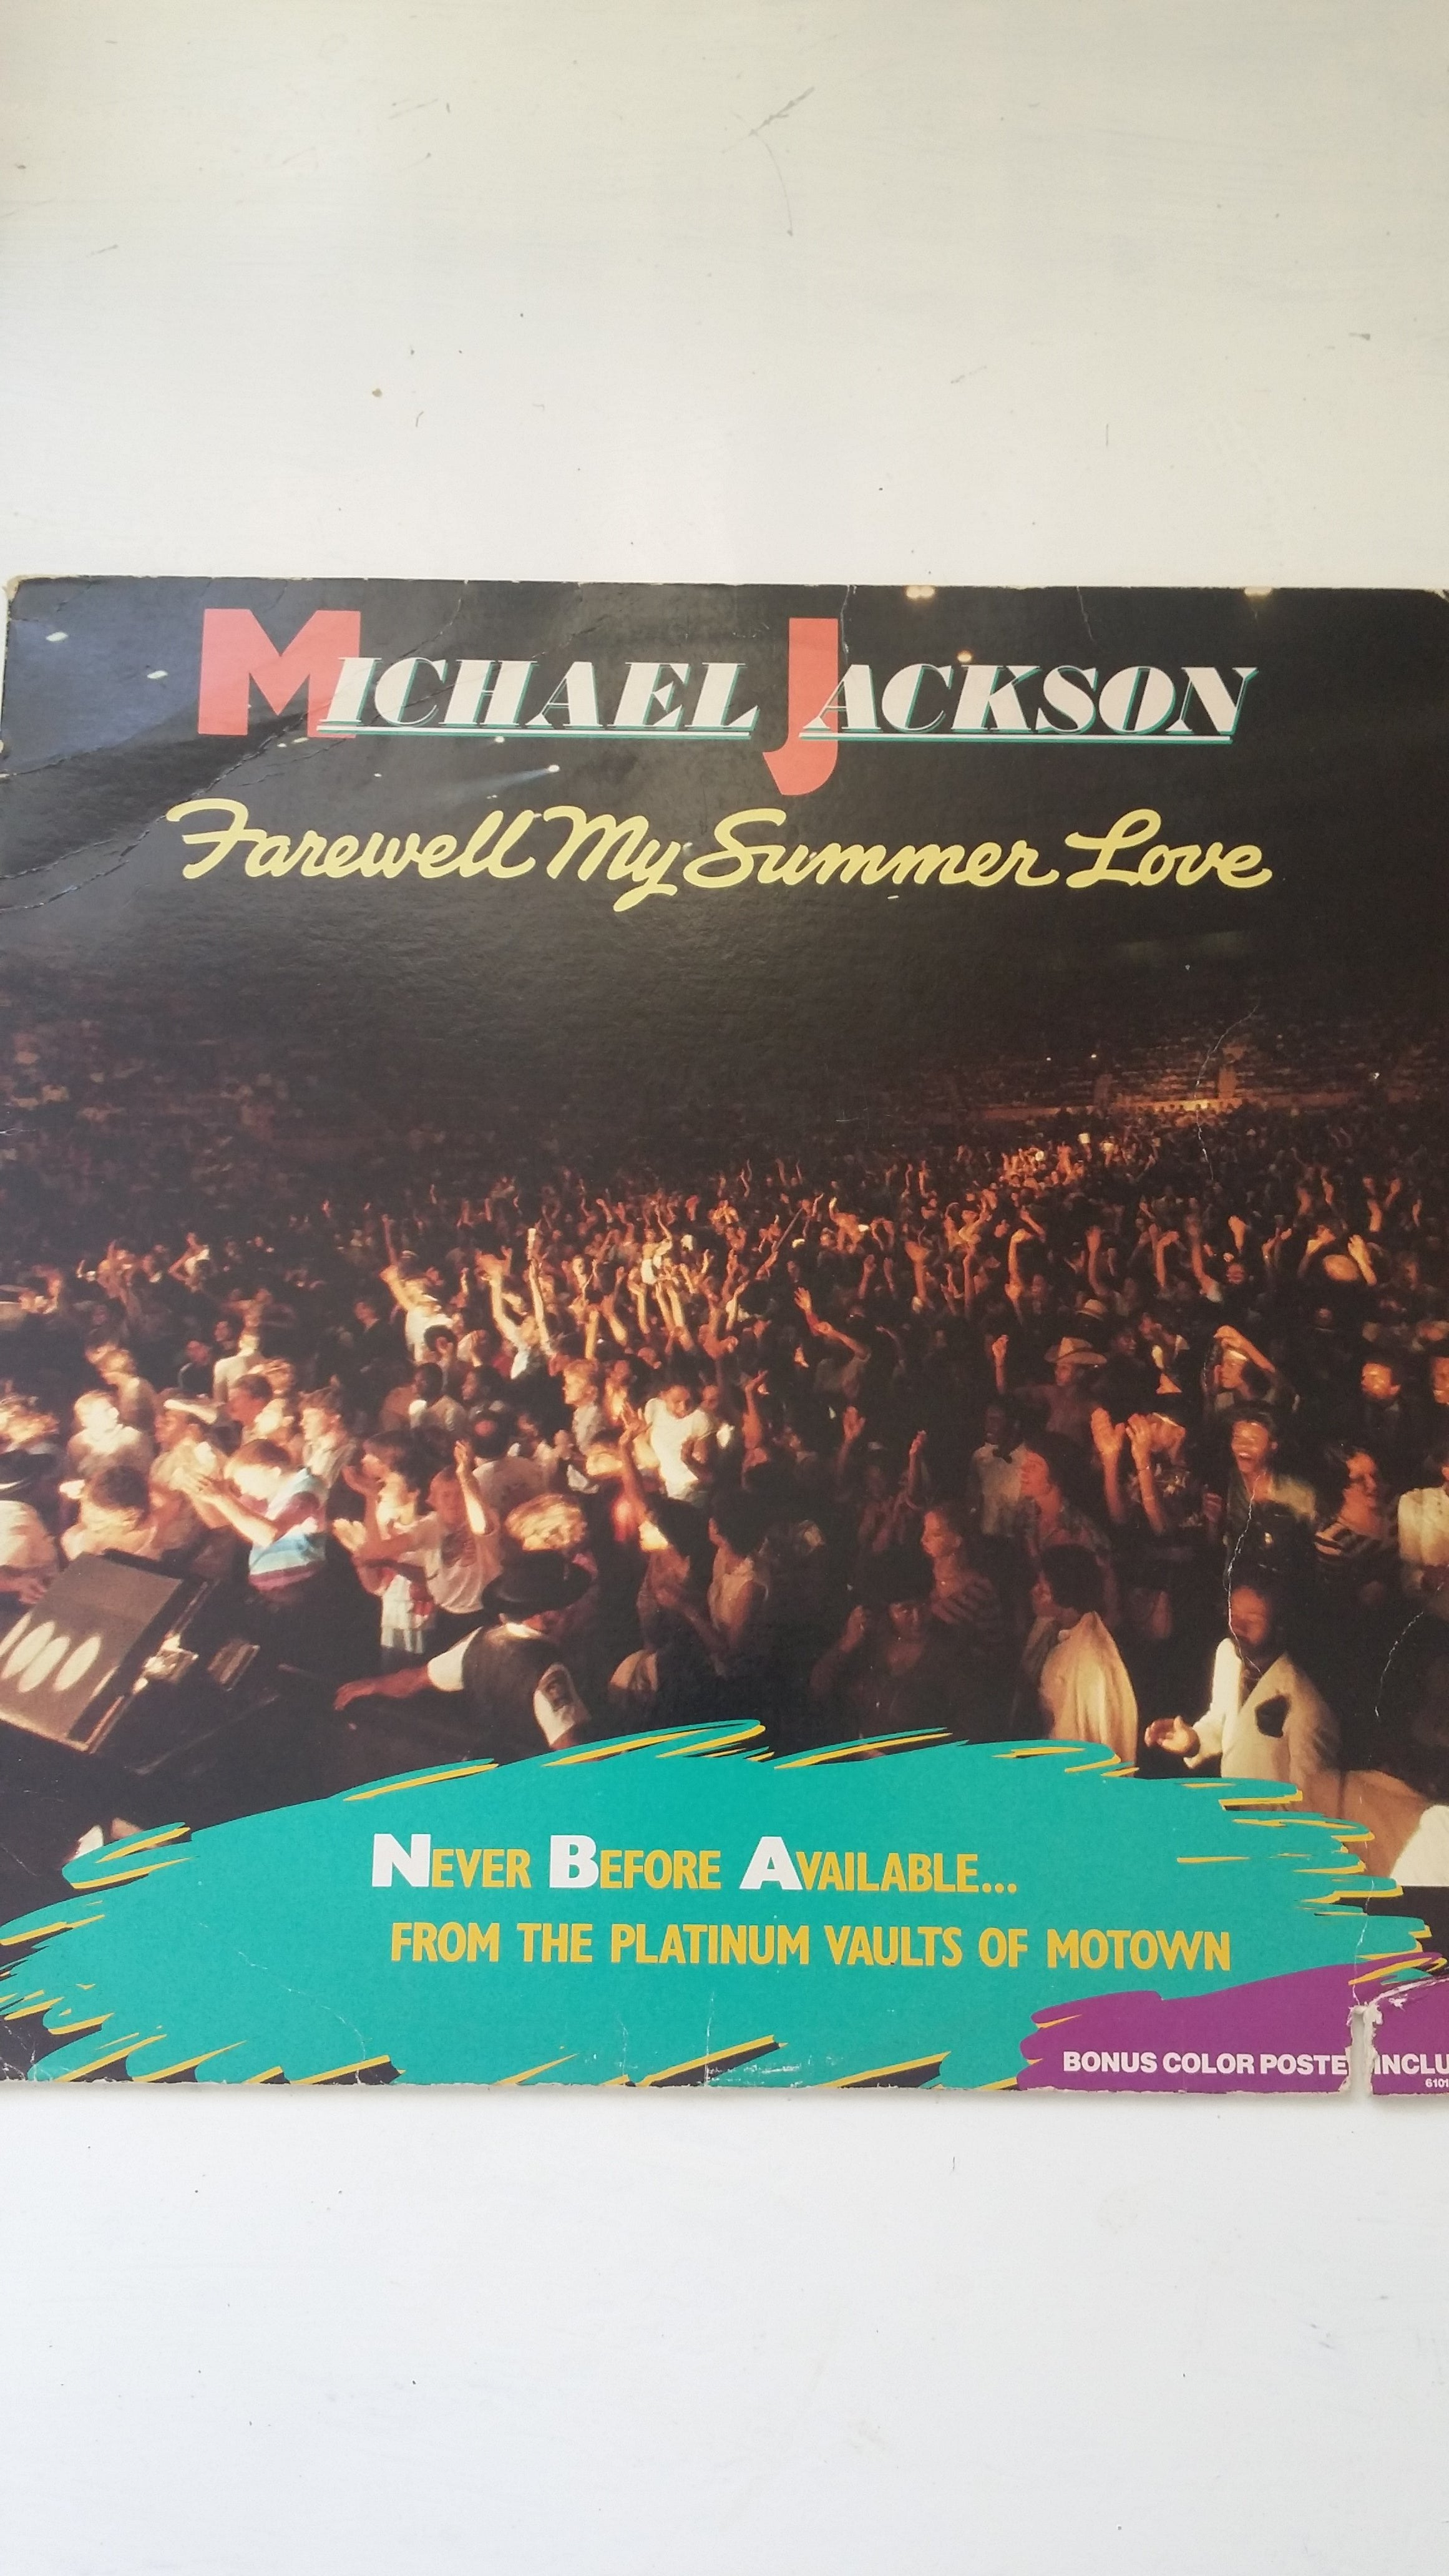 Vintage Vinyl:Michael Jackson, LP, Farewell my summer love. Worldwide delivery!